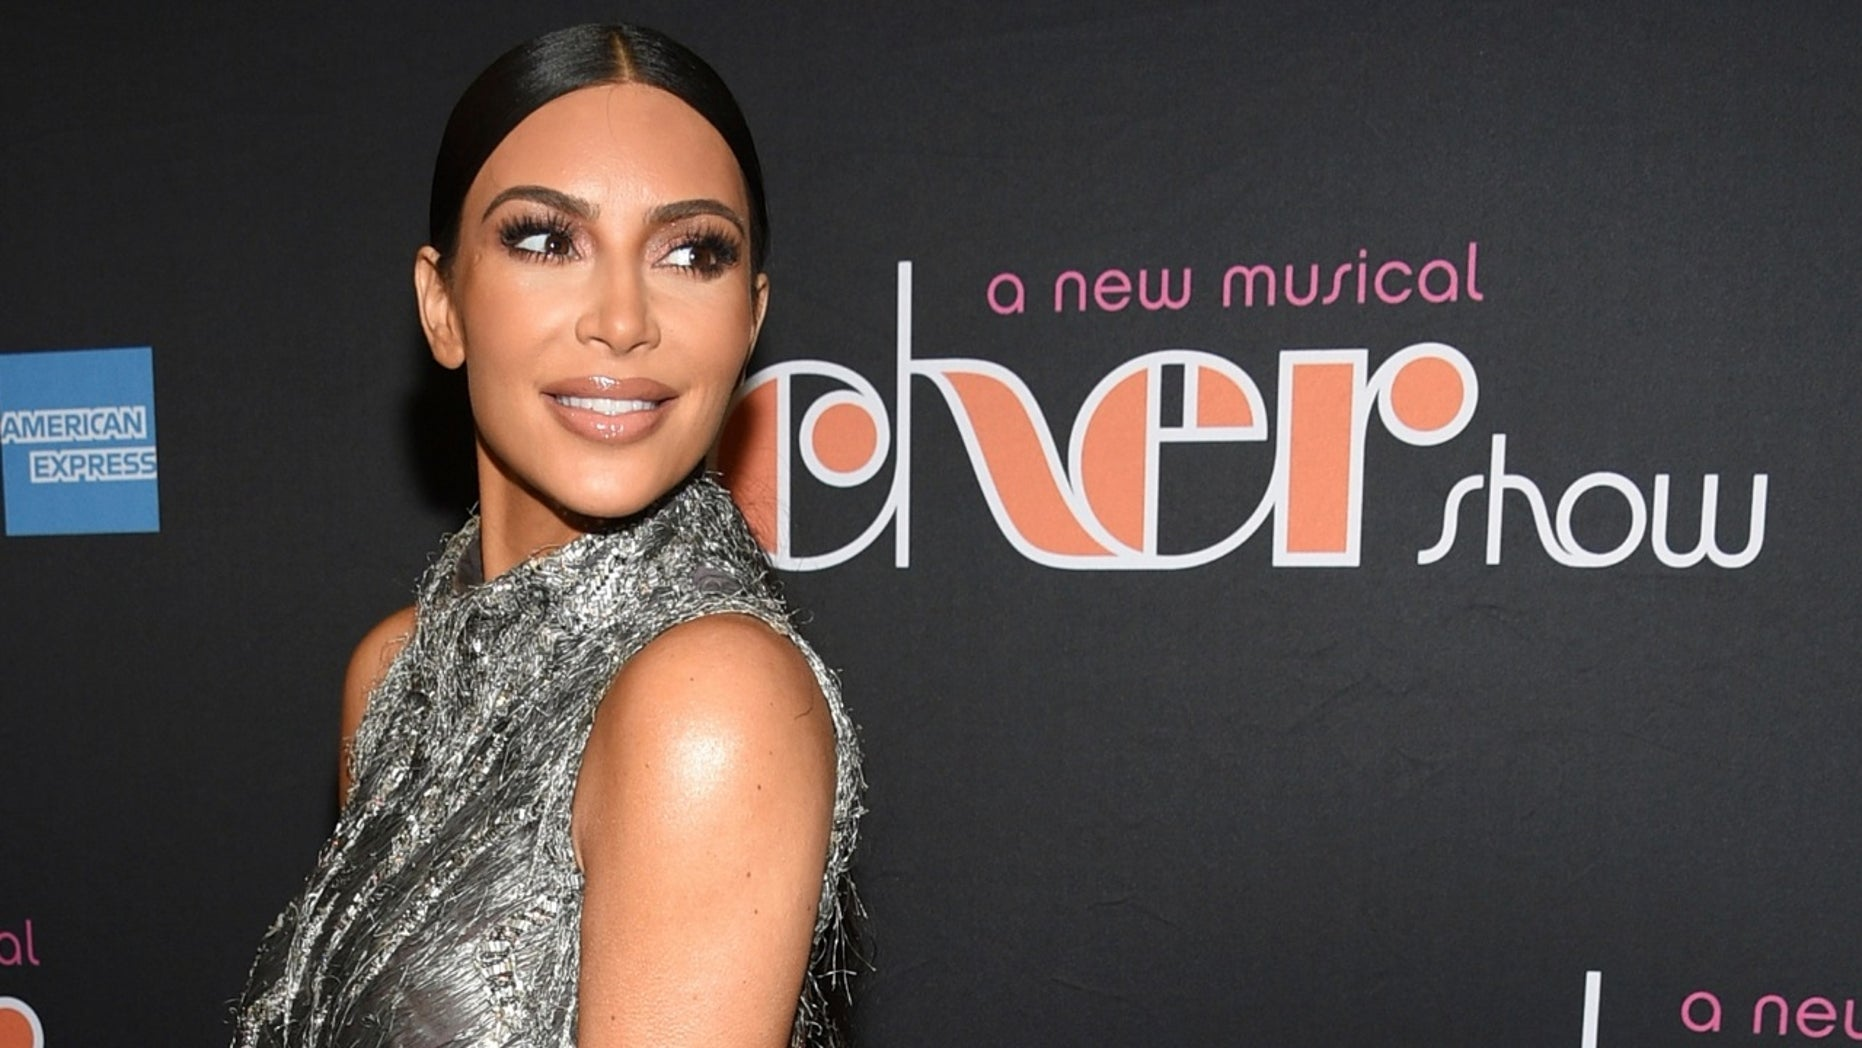 Kim Kardashian applauded New Zealand's lawmakers for proposing to change the country's gun laws following the mosque shootings that left at least 49 people dead.